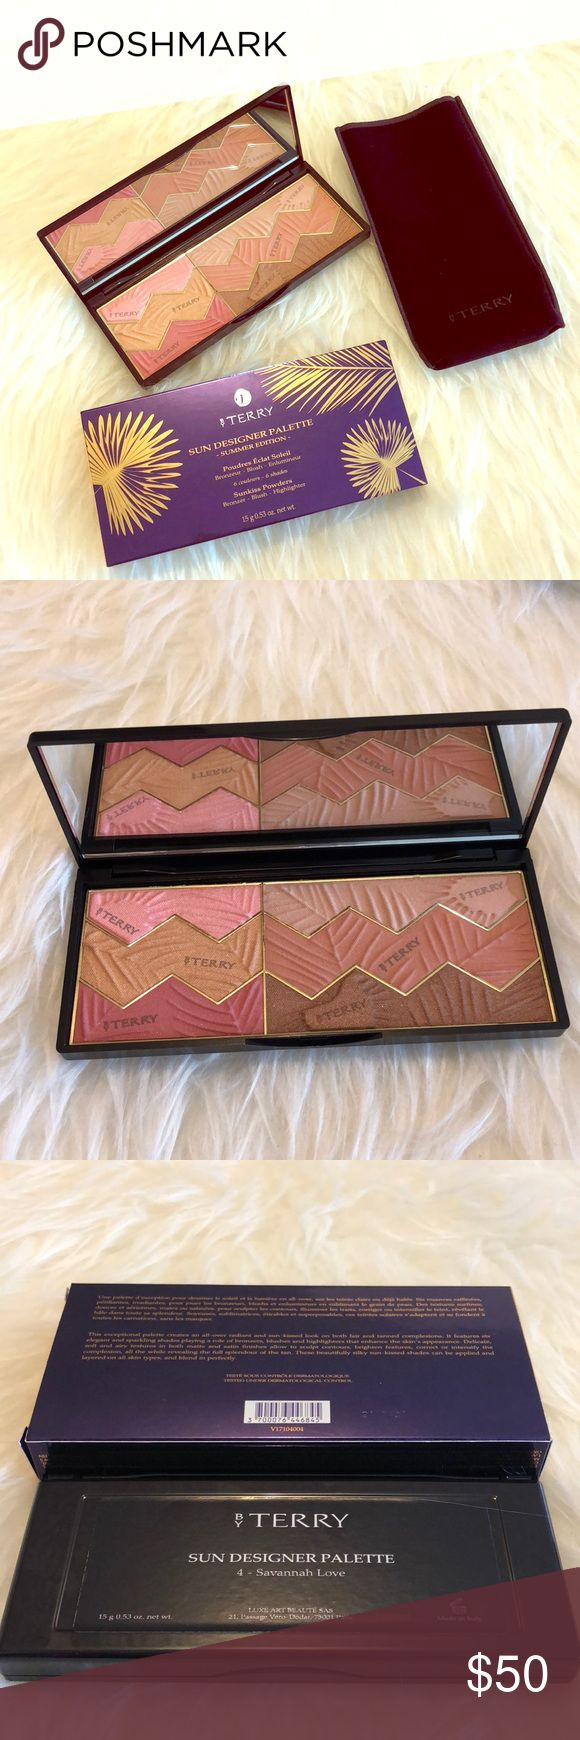 NEW! By Terry Savannah Love Sun Designer Palette Brand New, Authentic Unused, not swatched Limited Edition  See pics for screenshot of description of palette/shades  Definitely your 'grown up' palette, awesome reviews Blush/bronze/all over powders  Part of summer edition '17  Selling 40%off retail! This is a great buy by terry Makeup Blush